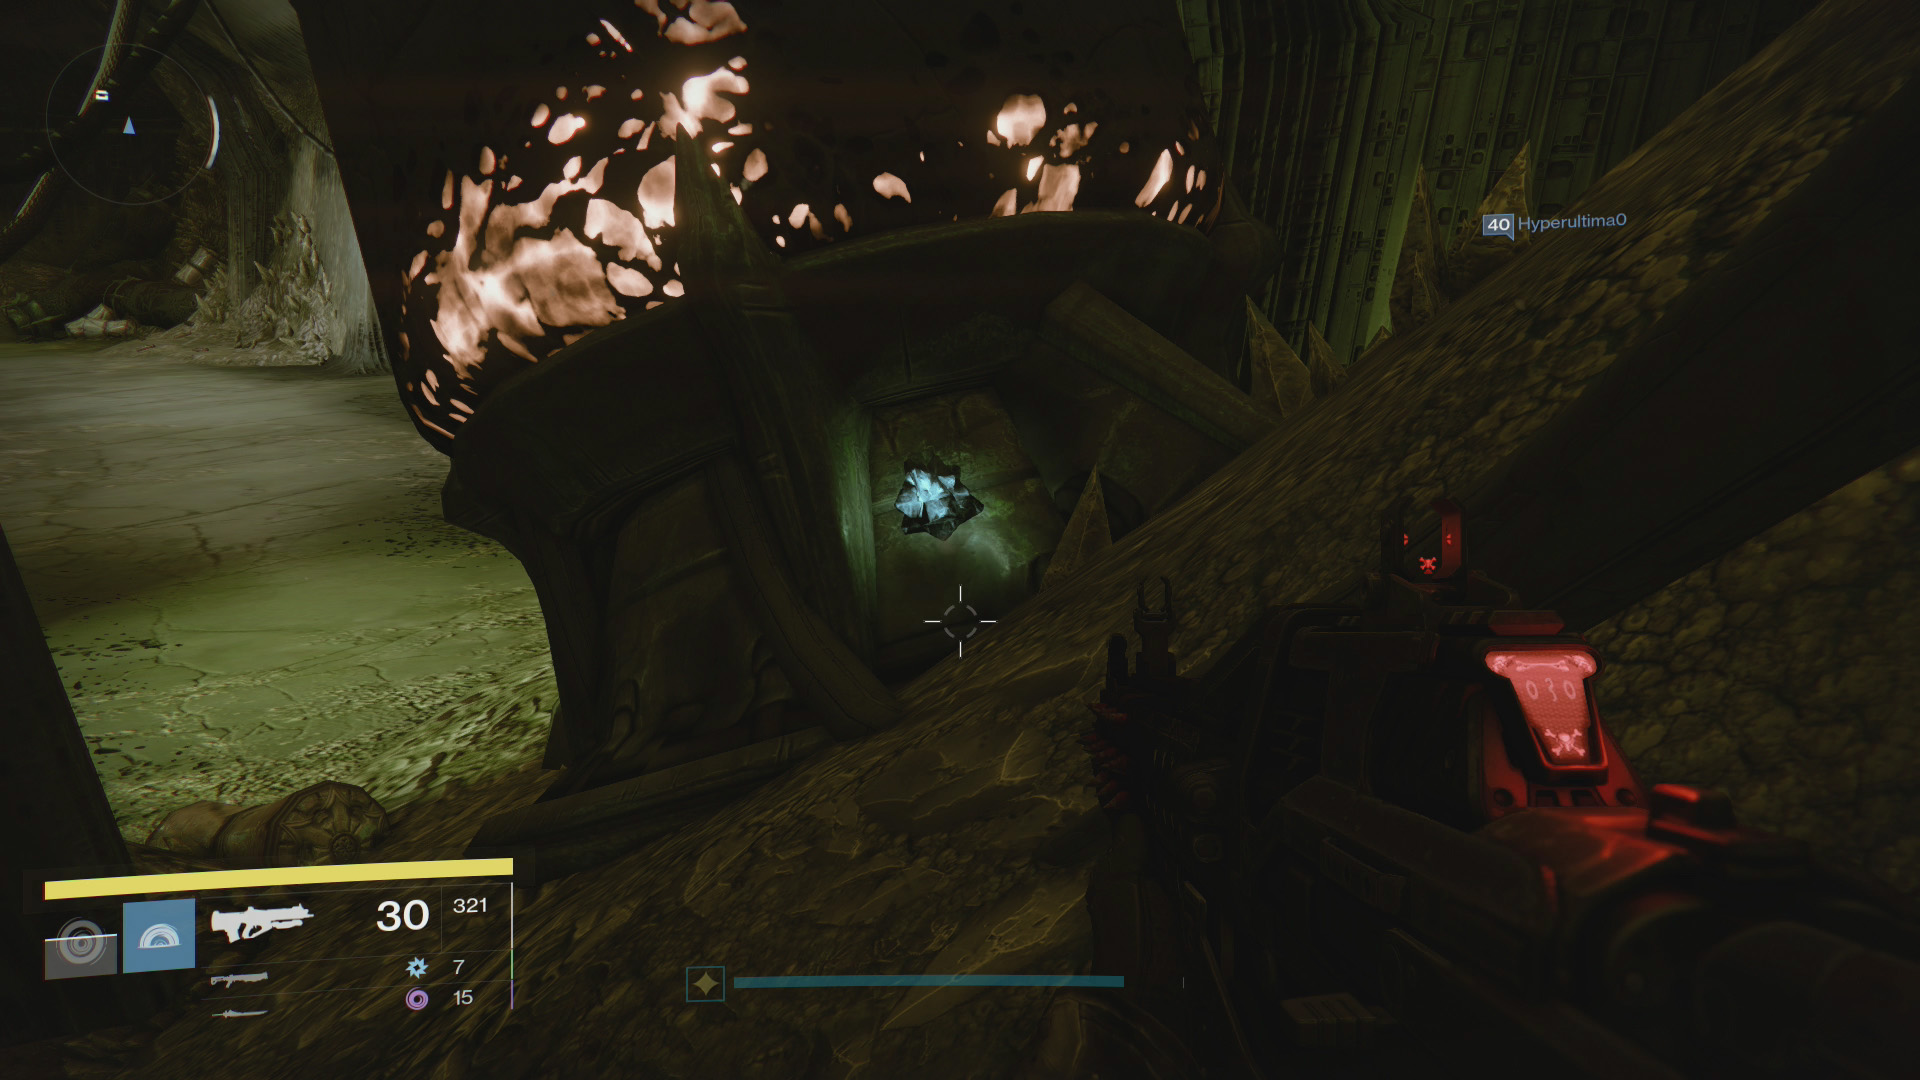 Destiny: The Taken King Calcified Fragments Guide - All